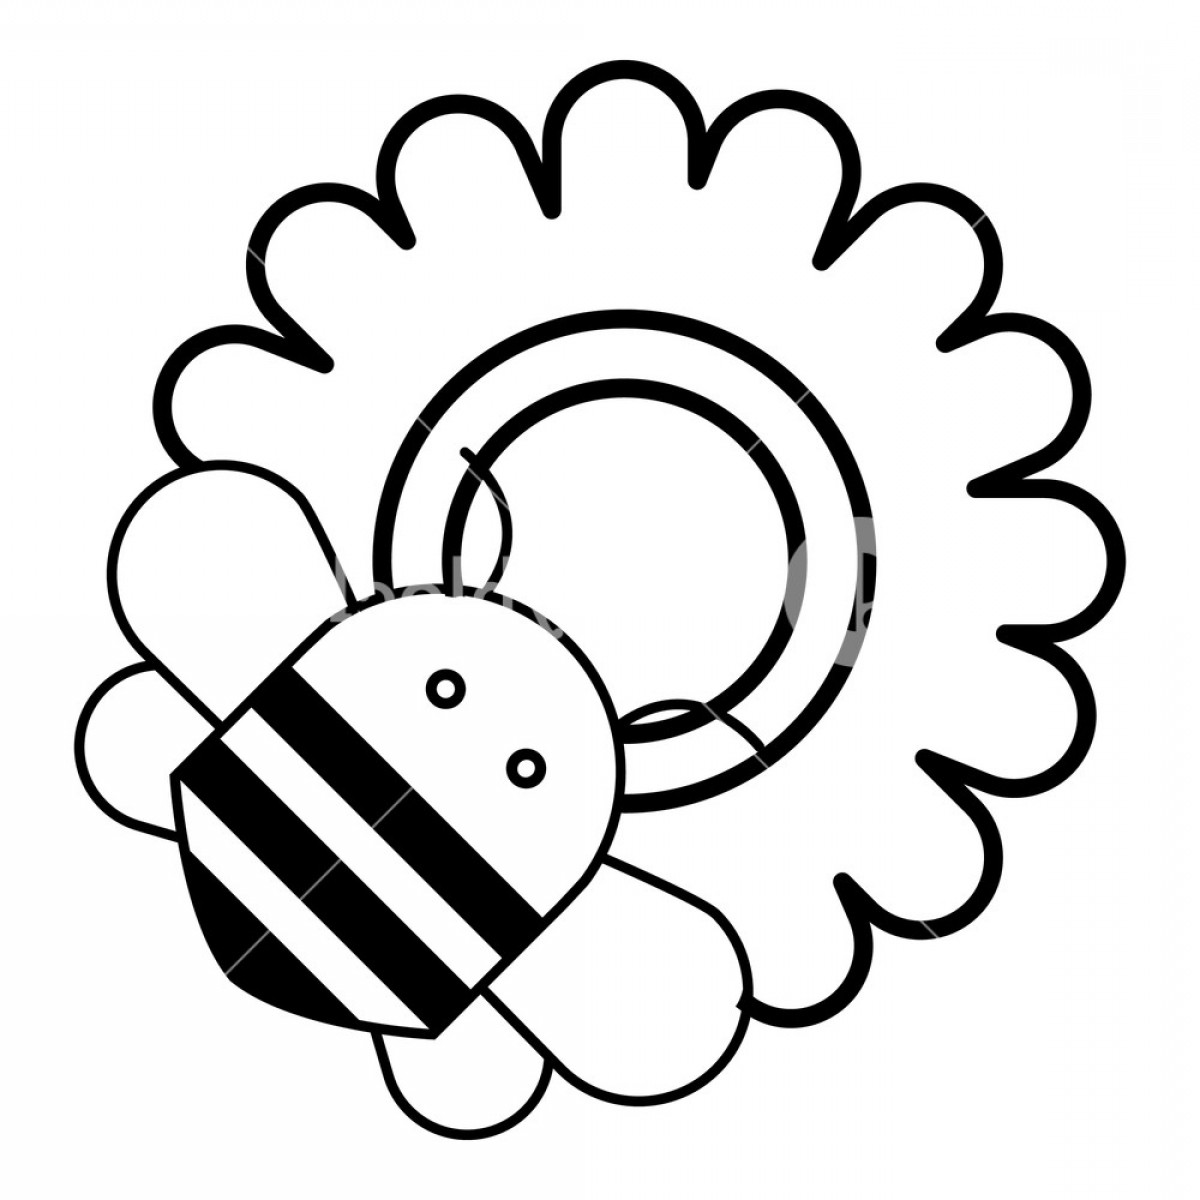 Bee Outline Vector: Bee On Flower Icon Outline Illustration Of Bee On Flower Vector Icon For Web Design Isolated On White Background Hiwohcedxjlbcch